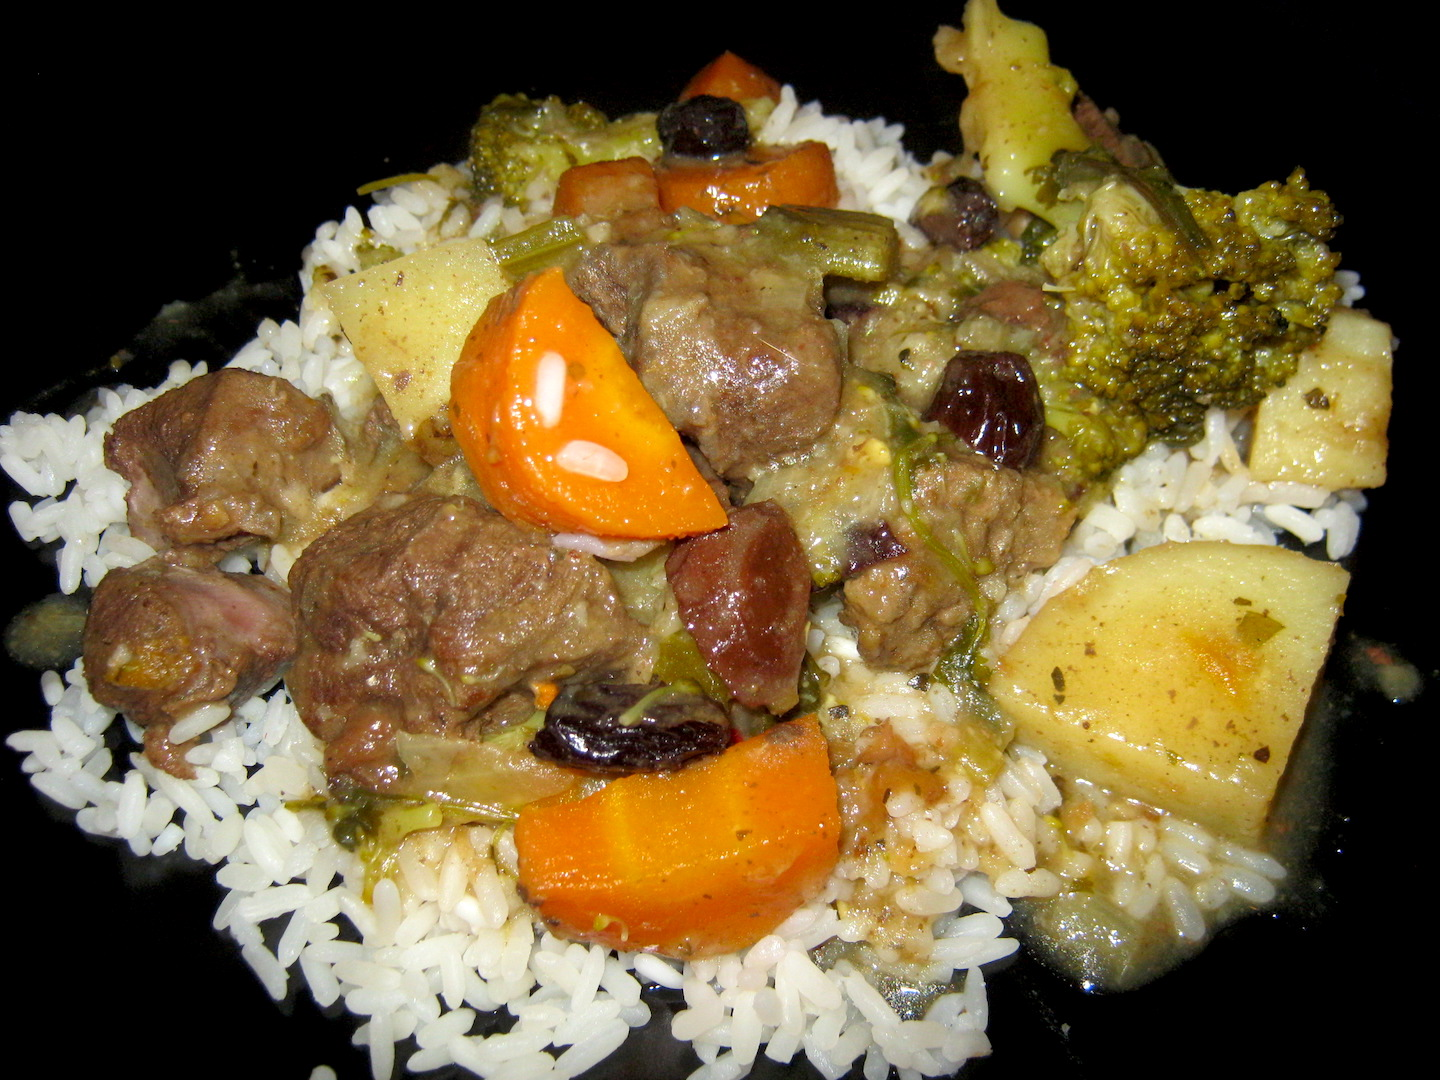 Venison stew on a bed of rice